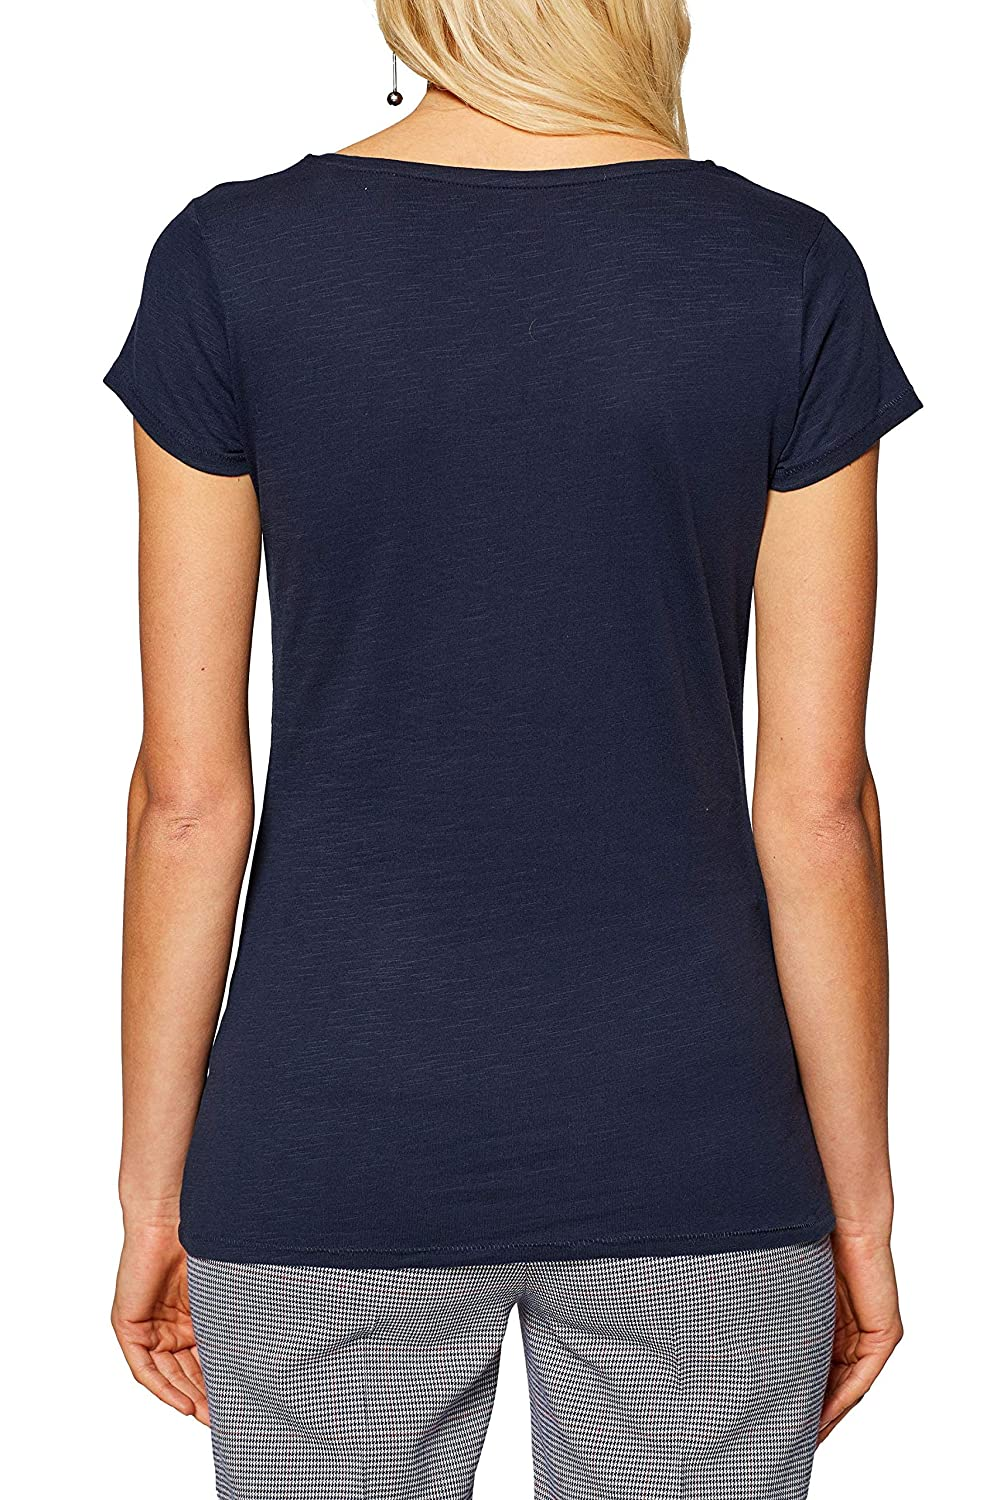 edc by ESPRIT Damen T-Shirt